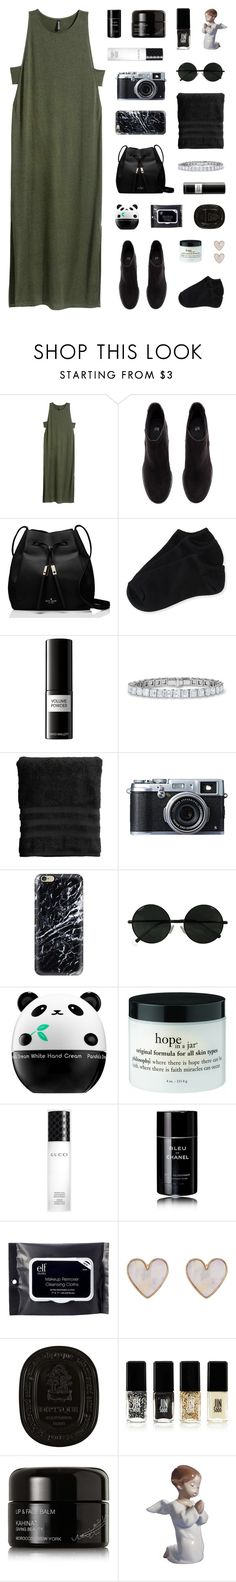 """PRAY FOR LEBANON"" by yazbo ❤ liked on Polyvore featuring H&M, Kate Spade, Aéropostale, David Mallett, Biltmore, Casetify, Tony Moly, Gucci, Chanel and e.l.f."